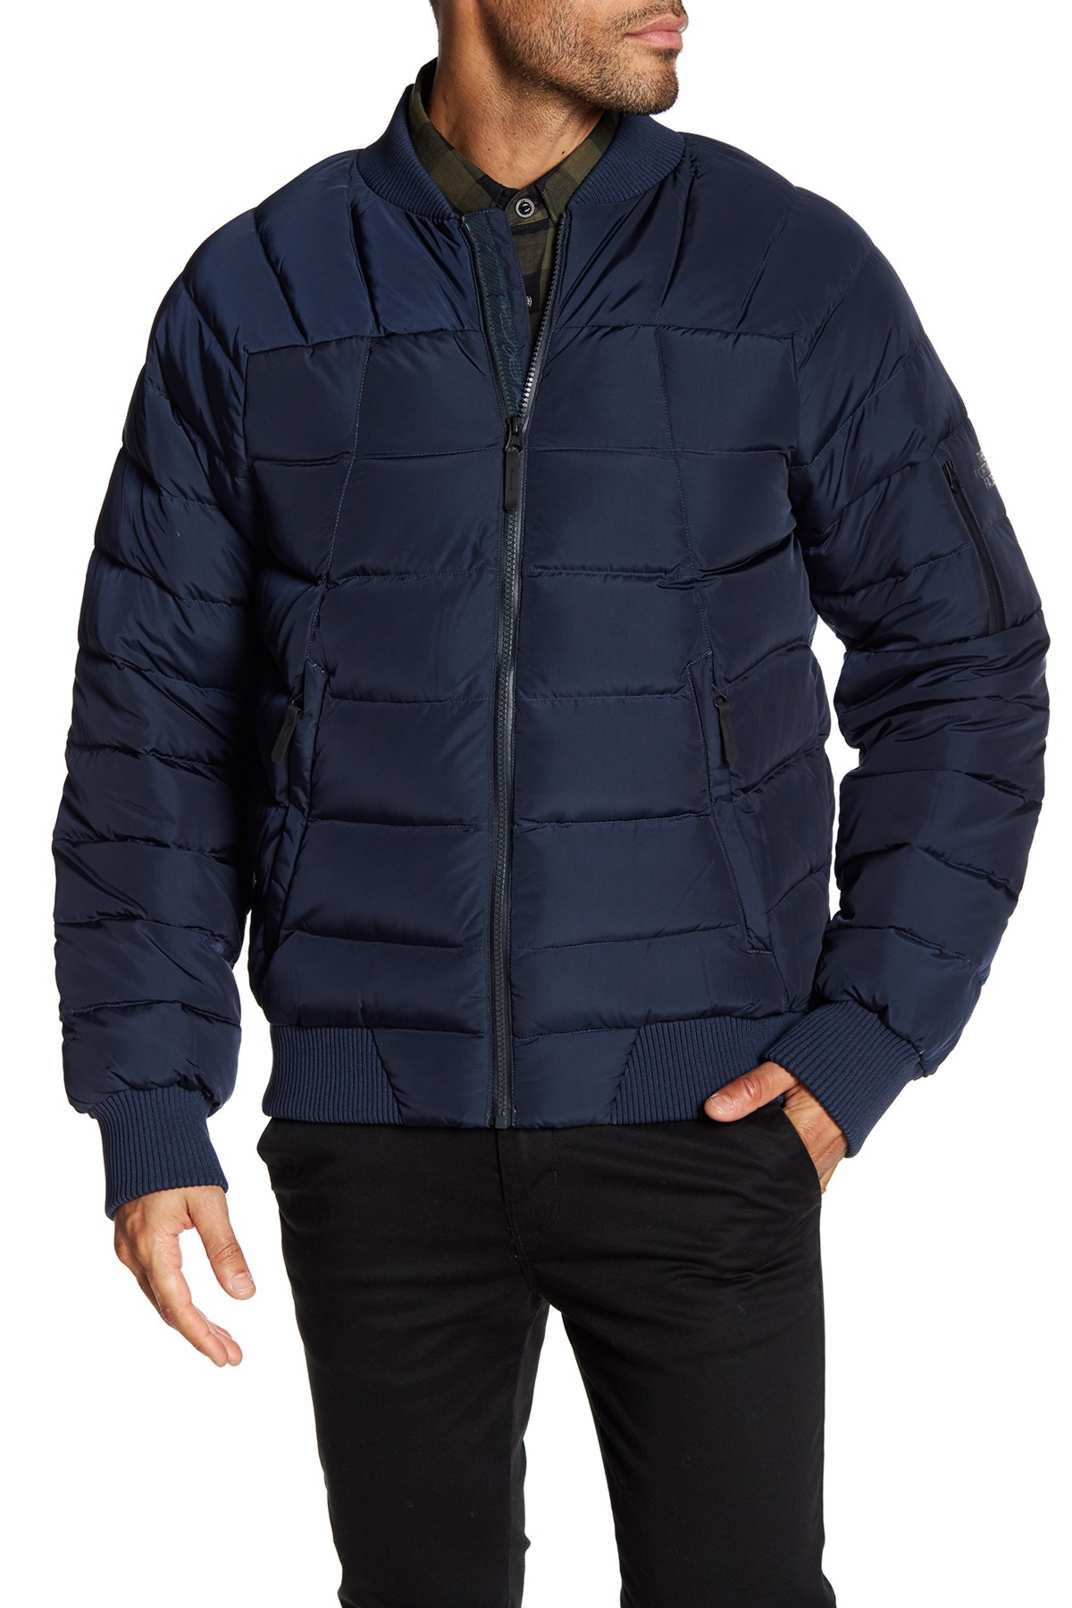 The North Face Kanatak Long Sleeve Bomber Jacket